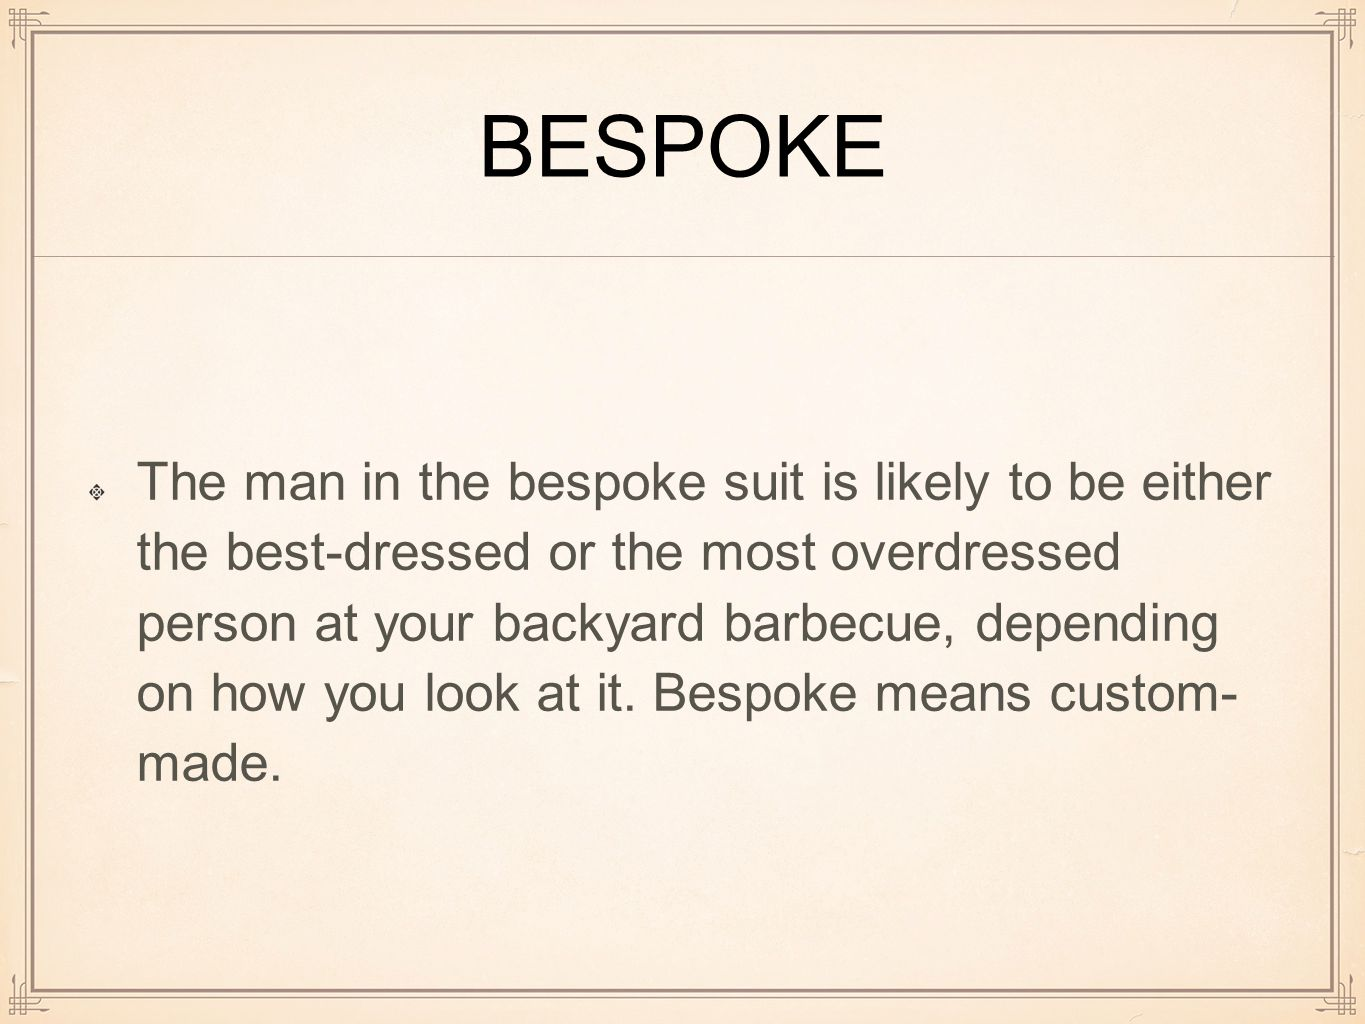 BESPOKE The man in the bespoke suit is likely to be either the best-dressed or the most overdressed person at your backyard barbecue, depending on how you look at it.